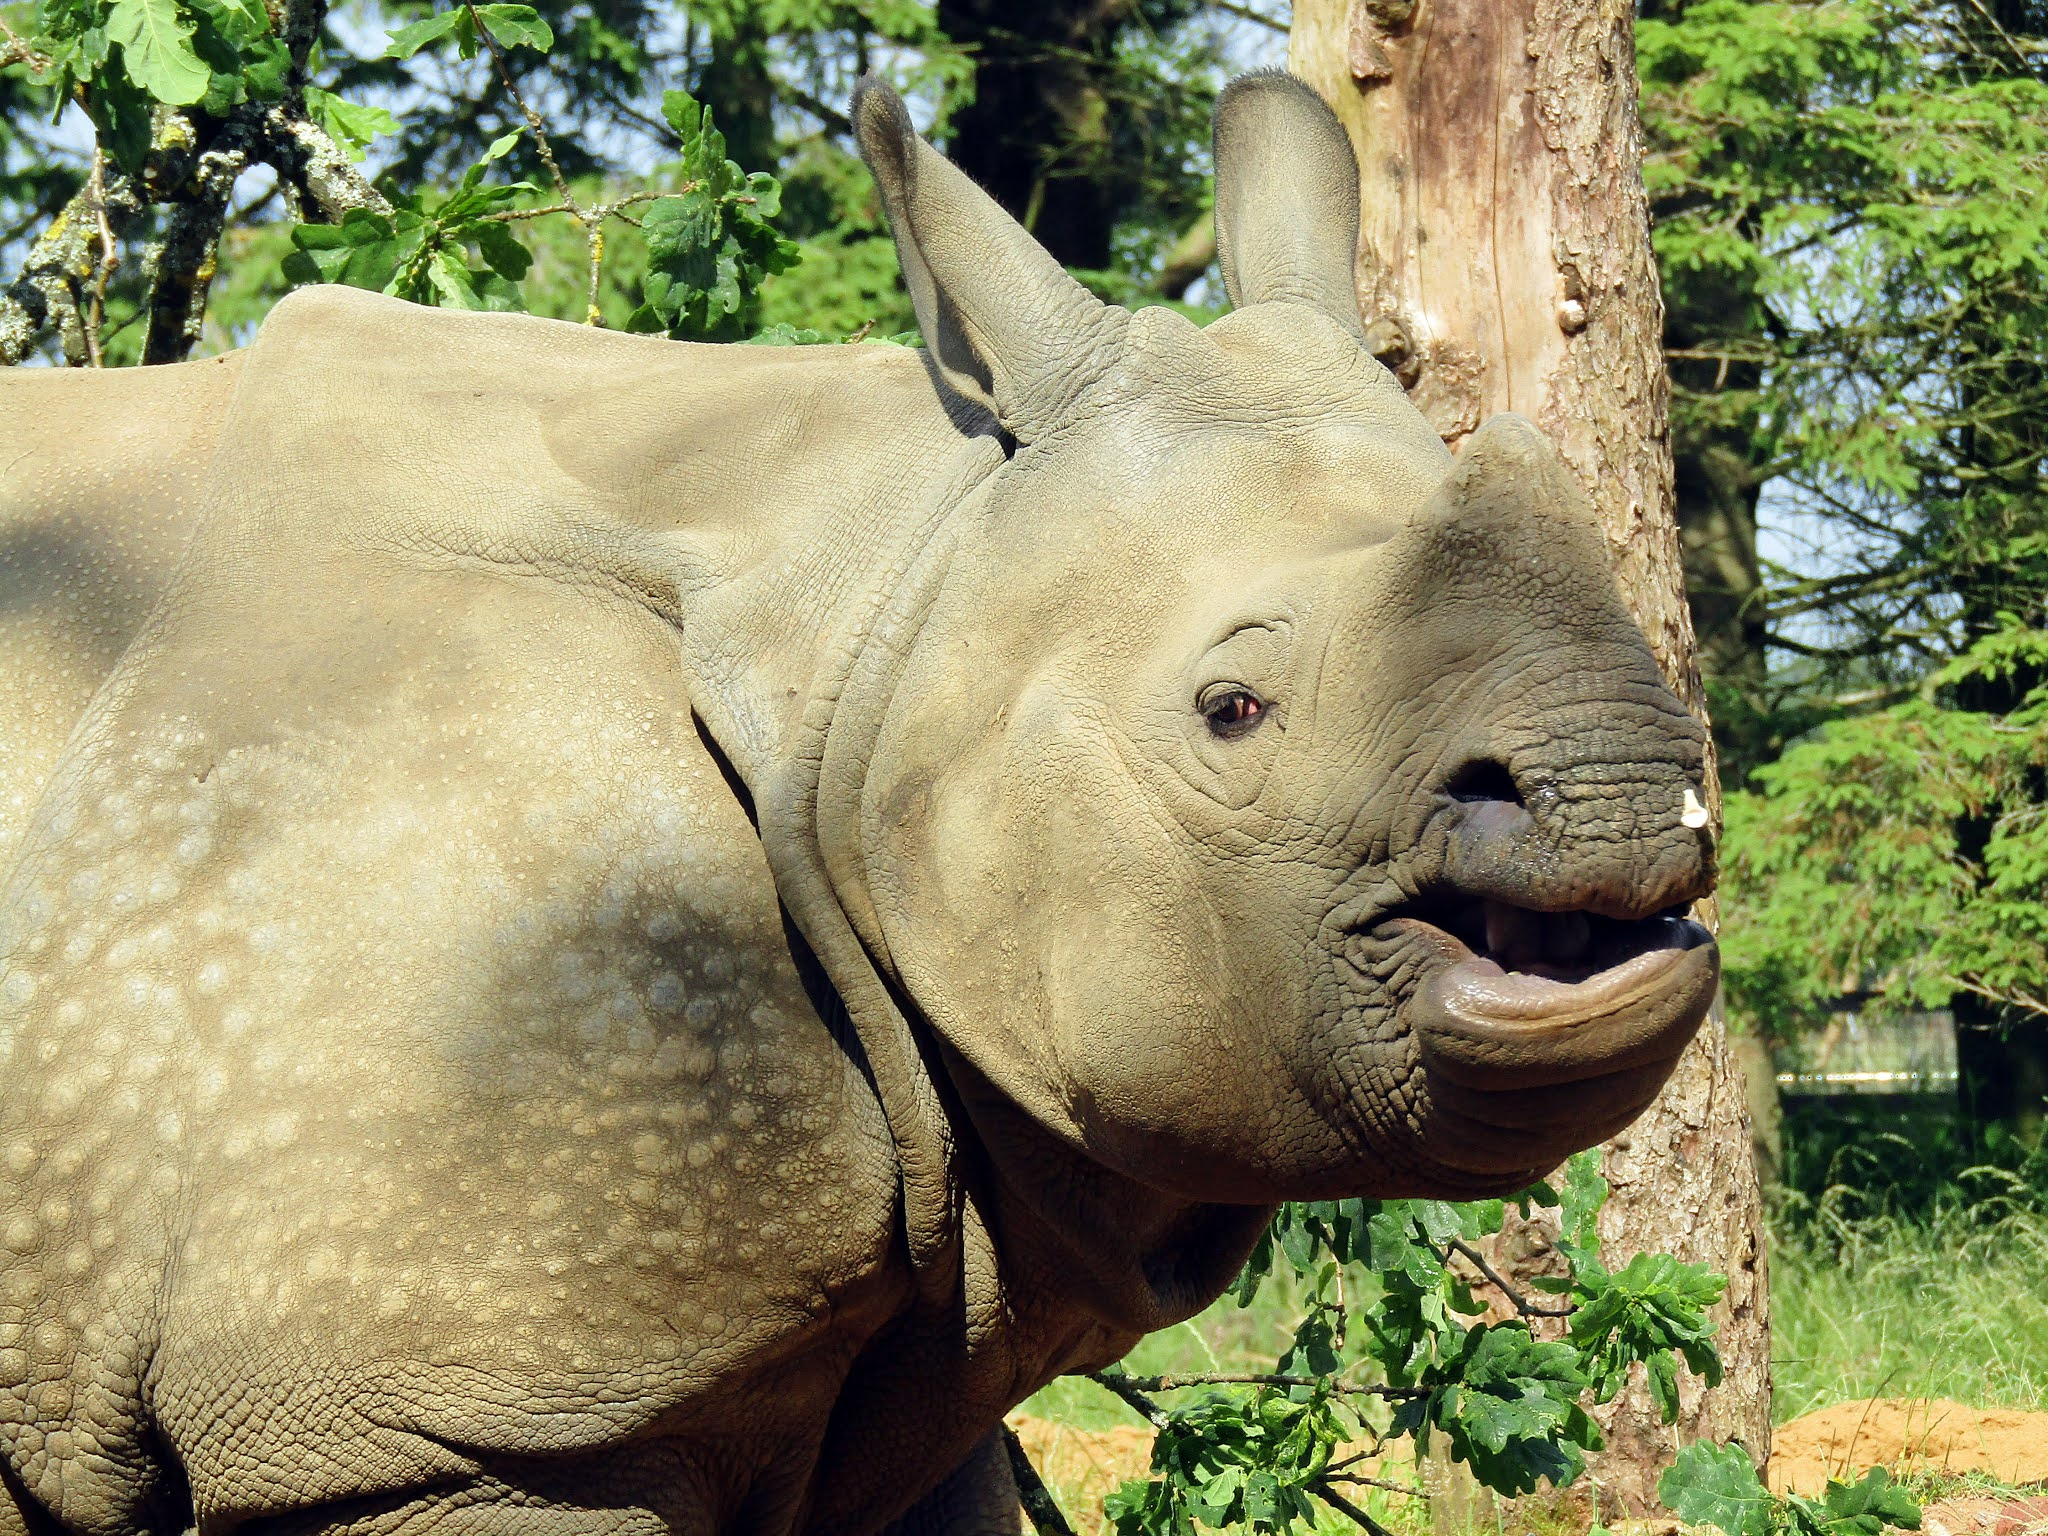 A photo of a greater one-horned rhino at Whipsnade Zoo.